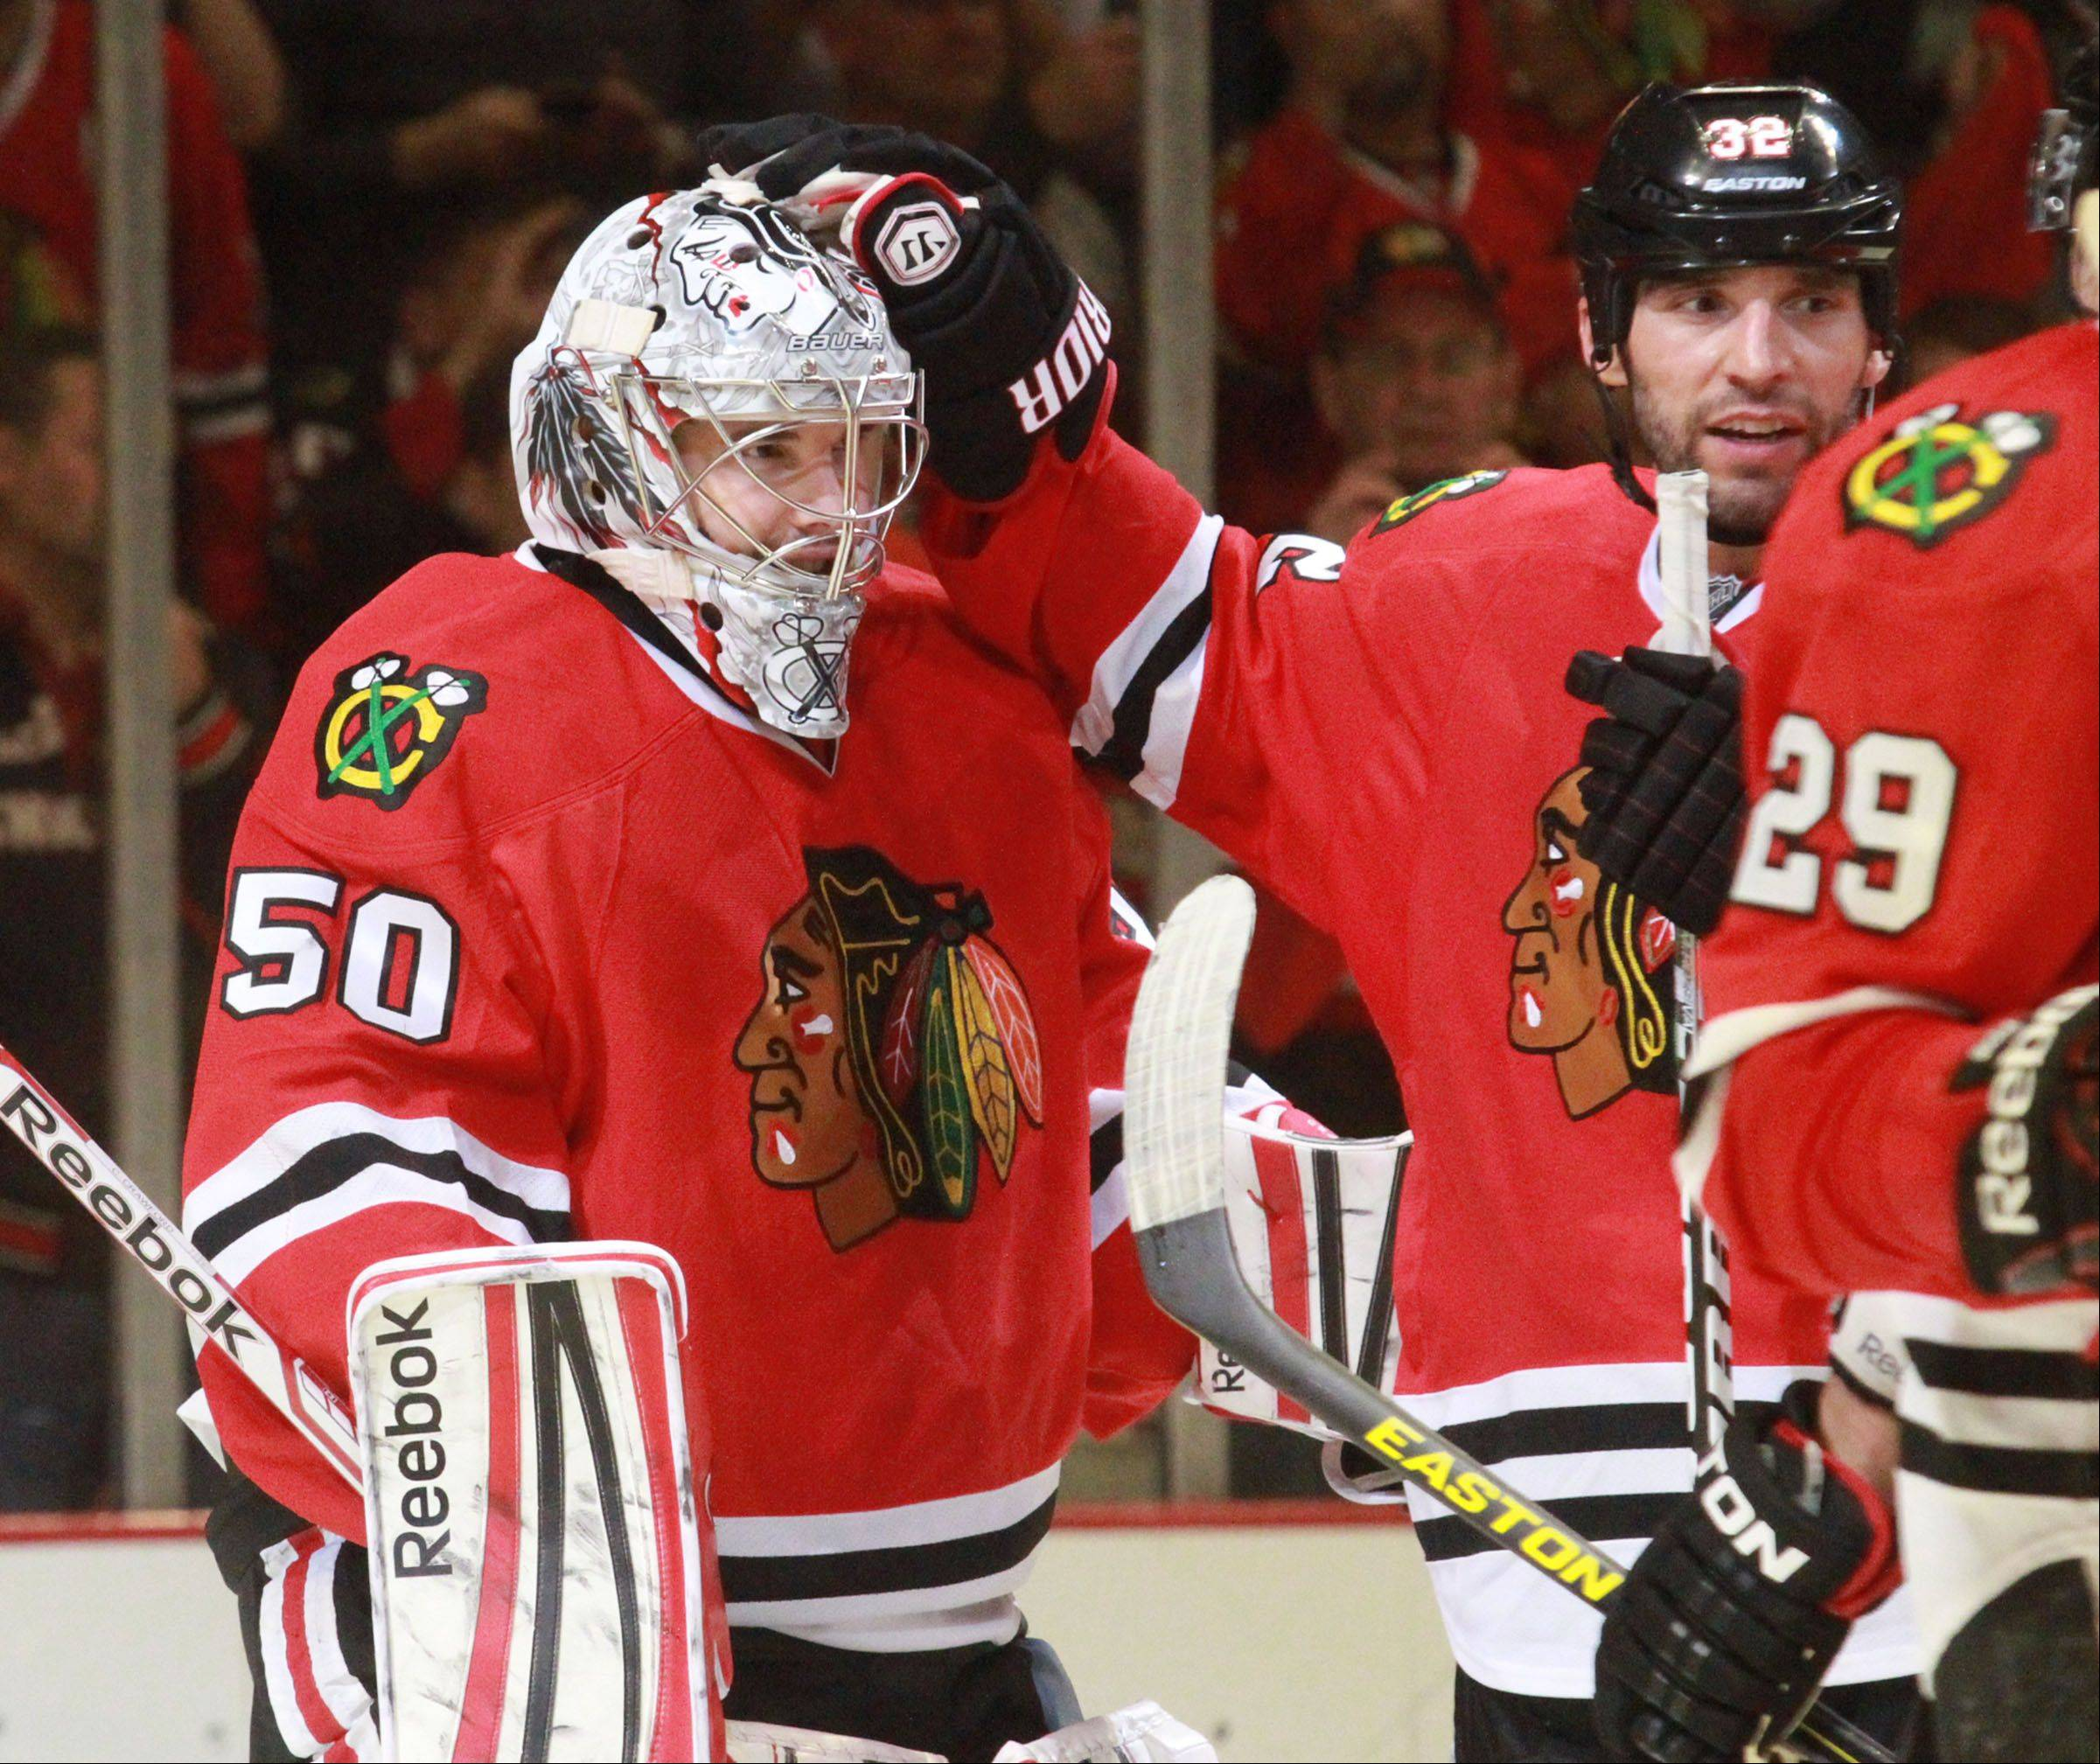 Chicago Blackhawks defenseman Michal Rozsival gives goalie Corey Crawford a hand.